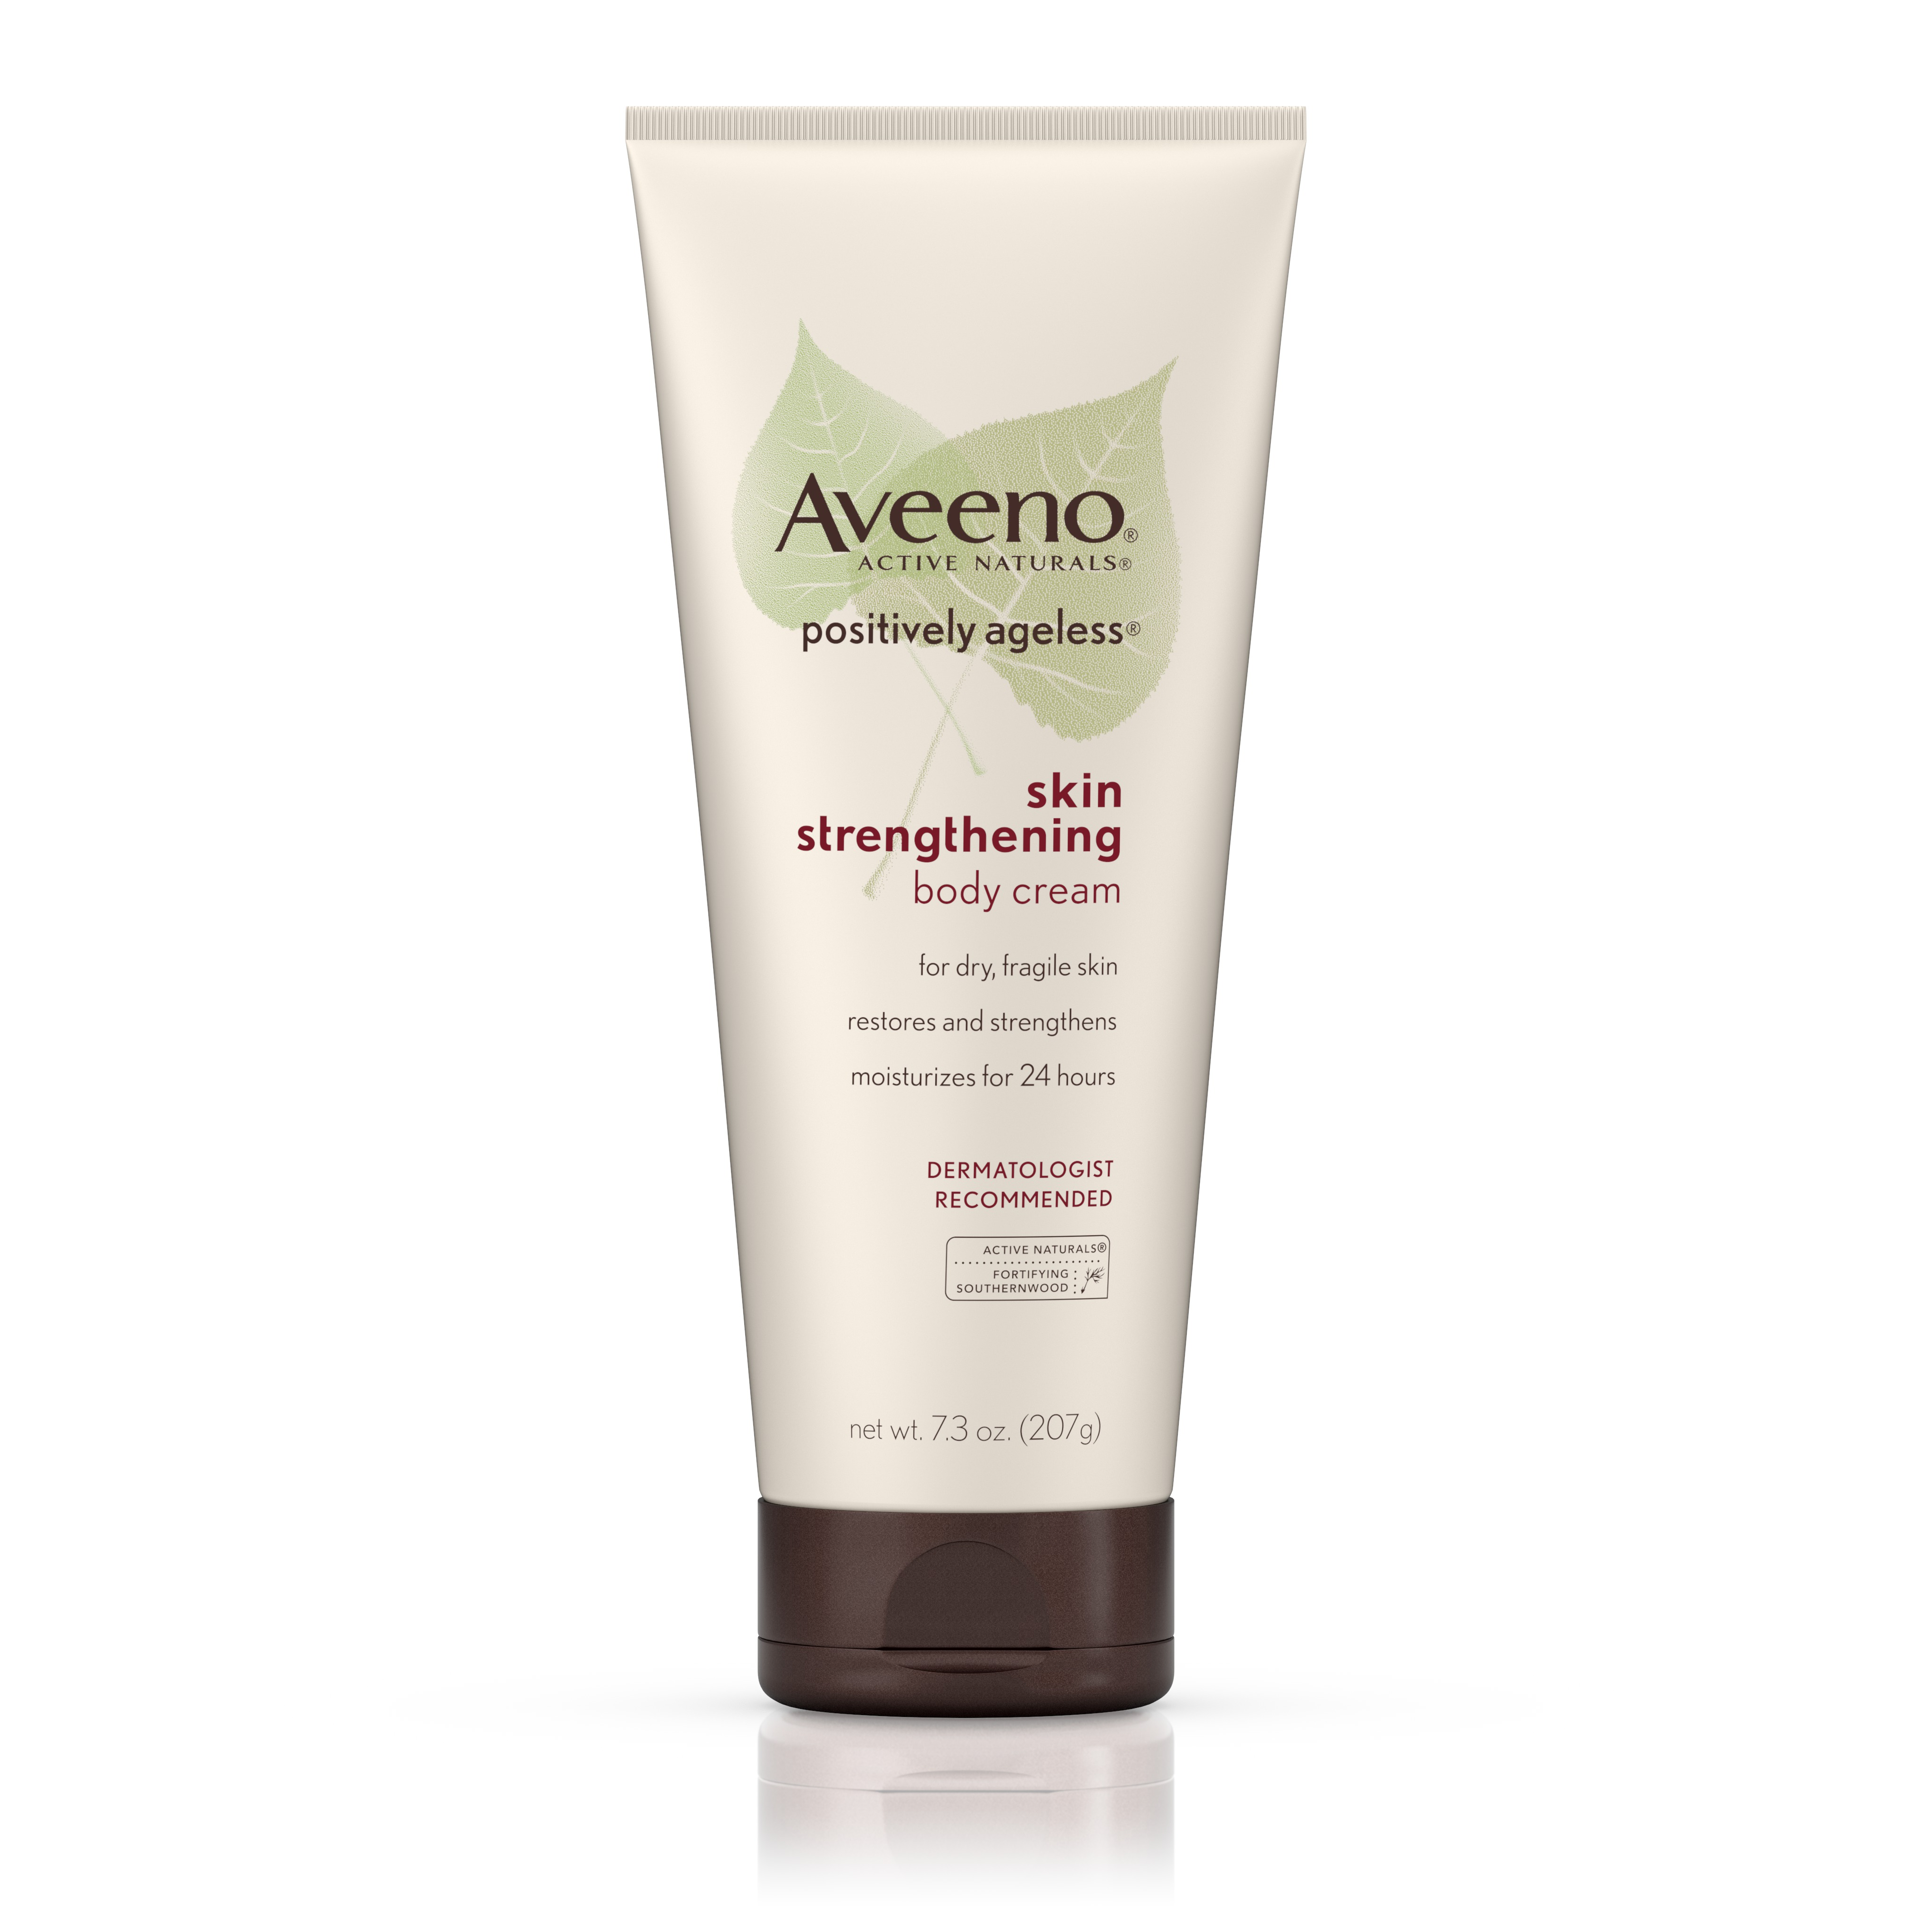 Aveeno Positively Ageless Skin Strengthening Body Cream, Moisturizes For 24 Hours 7.3 Oz by Johnson & Johnson Consumer Products Company Division of Johnson & Johnson Consumer Companies, Inc.